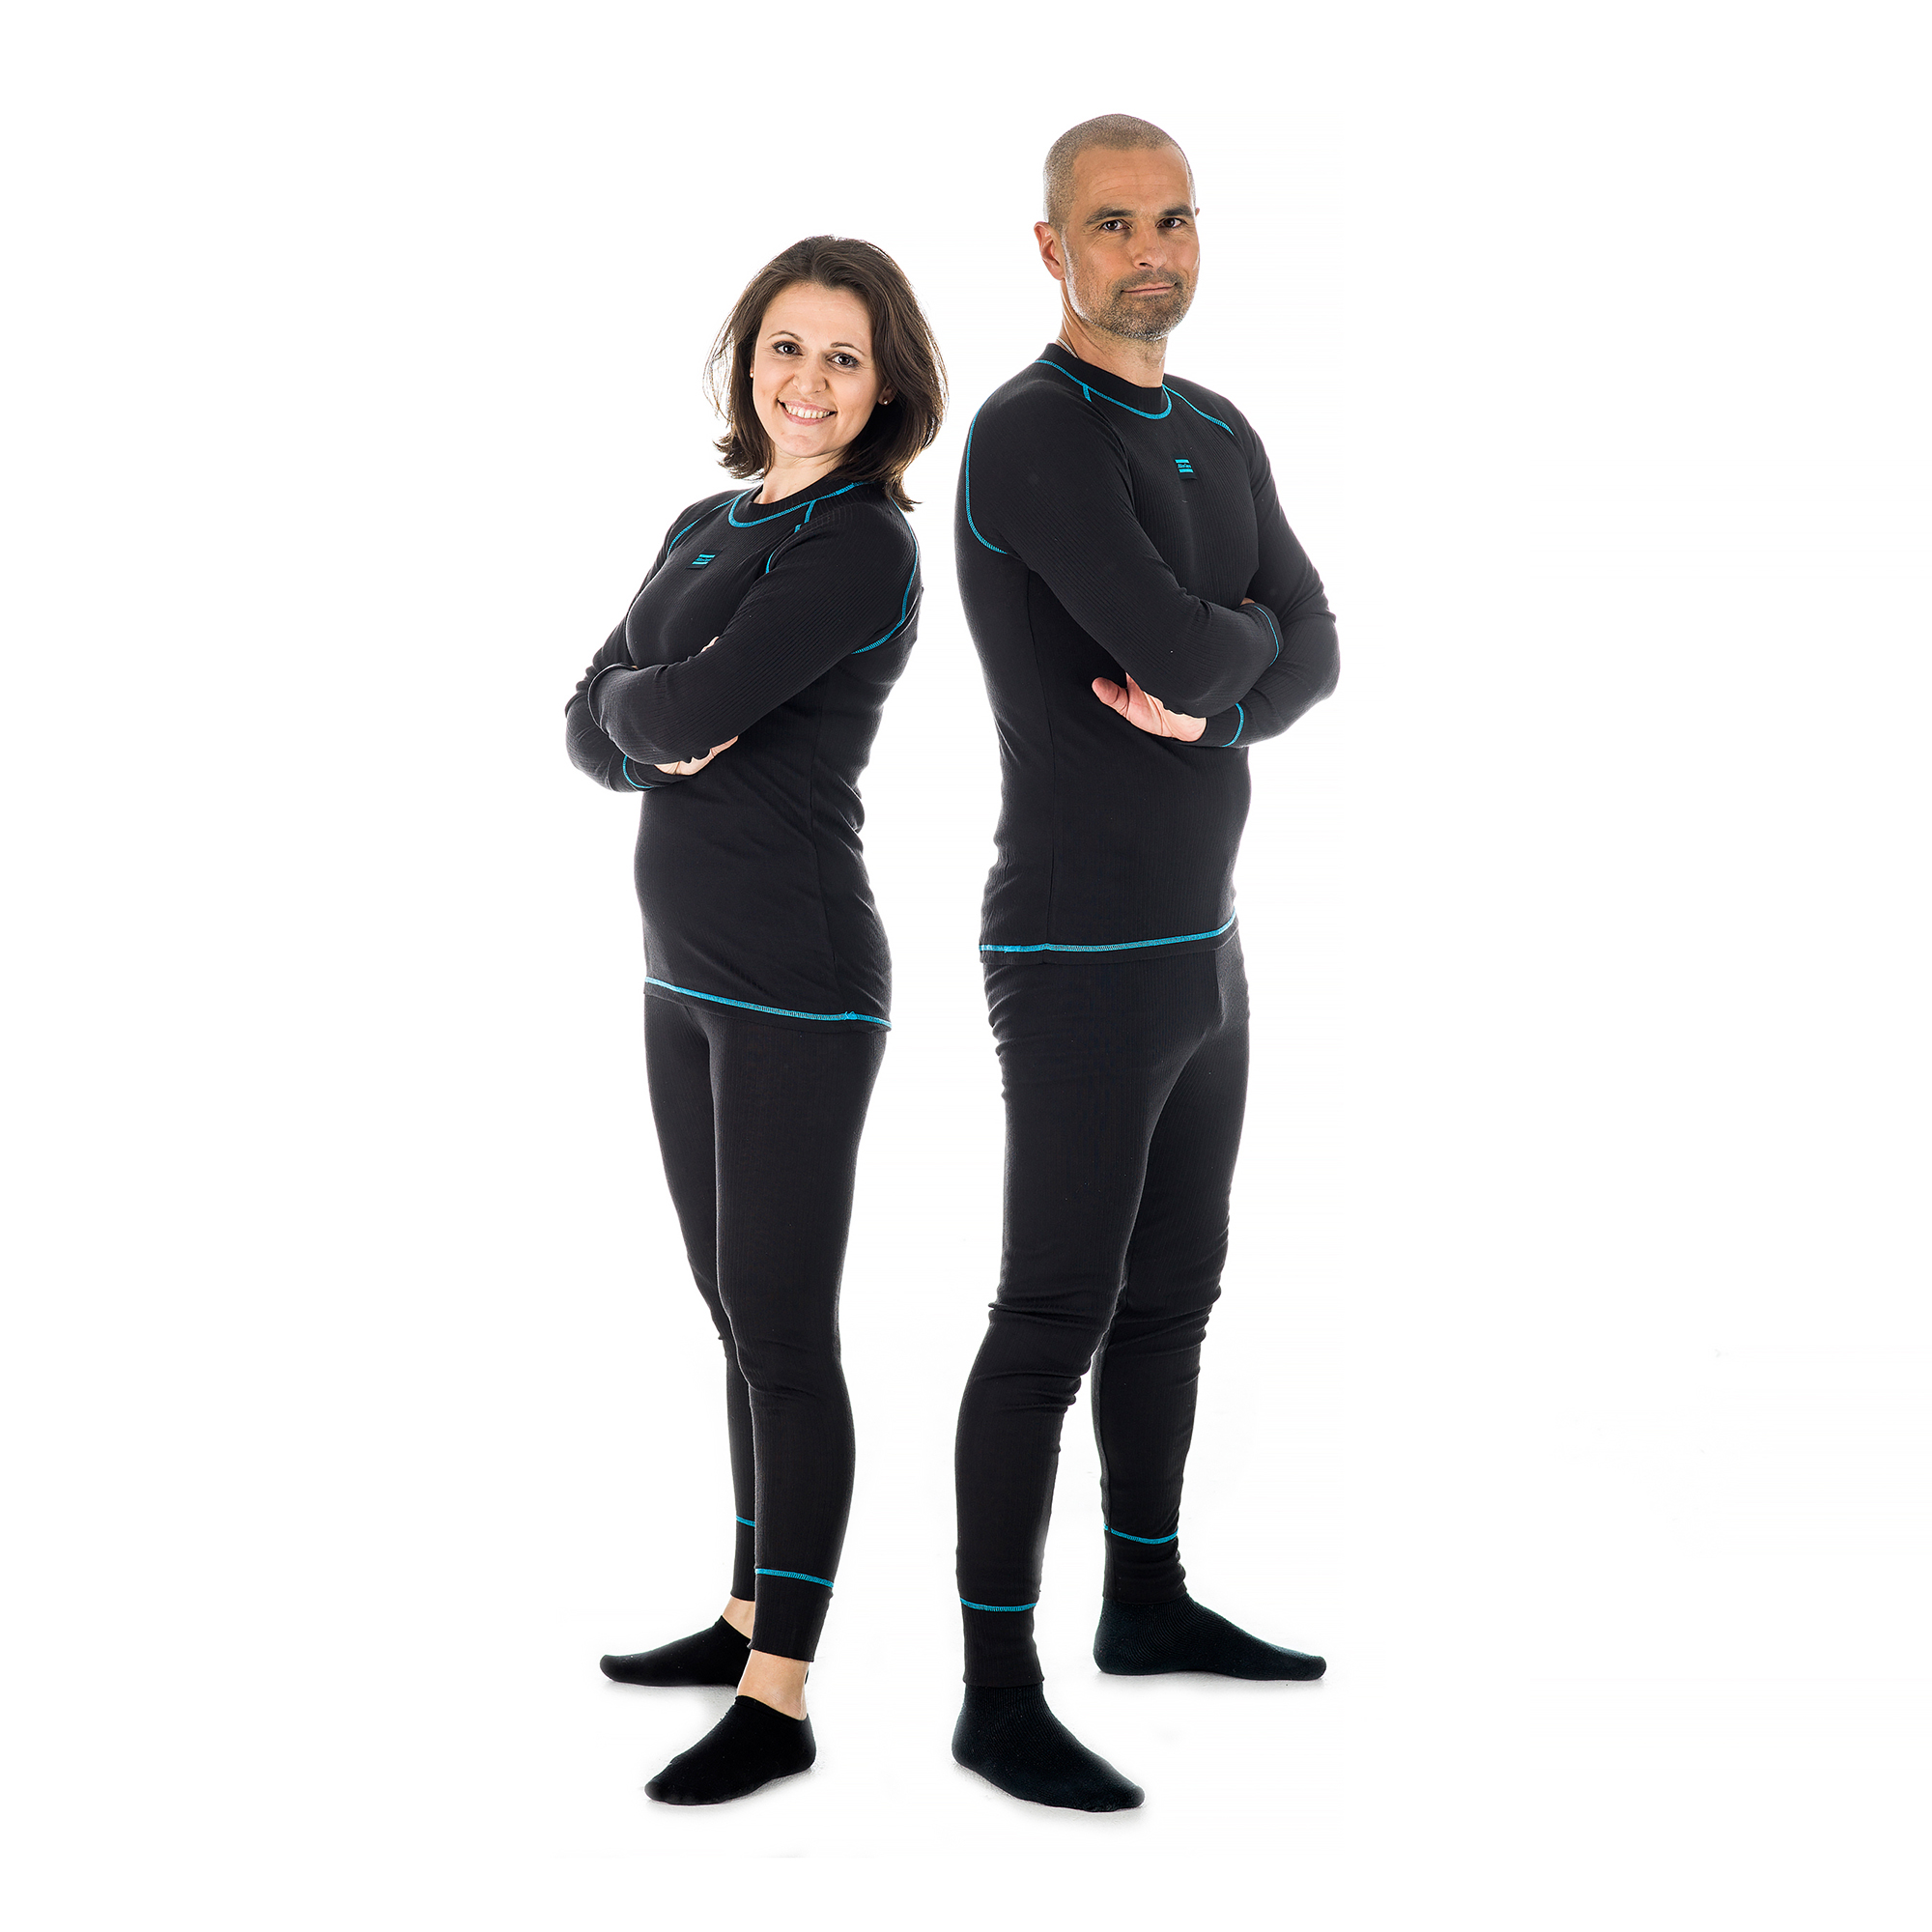 This thermal underwear is a perfect first layer when being active in a cold environment. Made of special fiber cross-section that provides cool, dry and light garments. Body moisture is transported quickly to the material's outer side where it then evaporates. Easy-care treatment gives the underwear a long lasting fit.